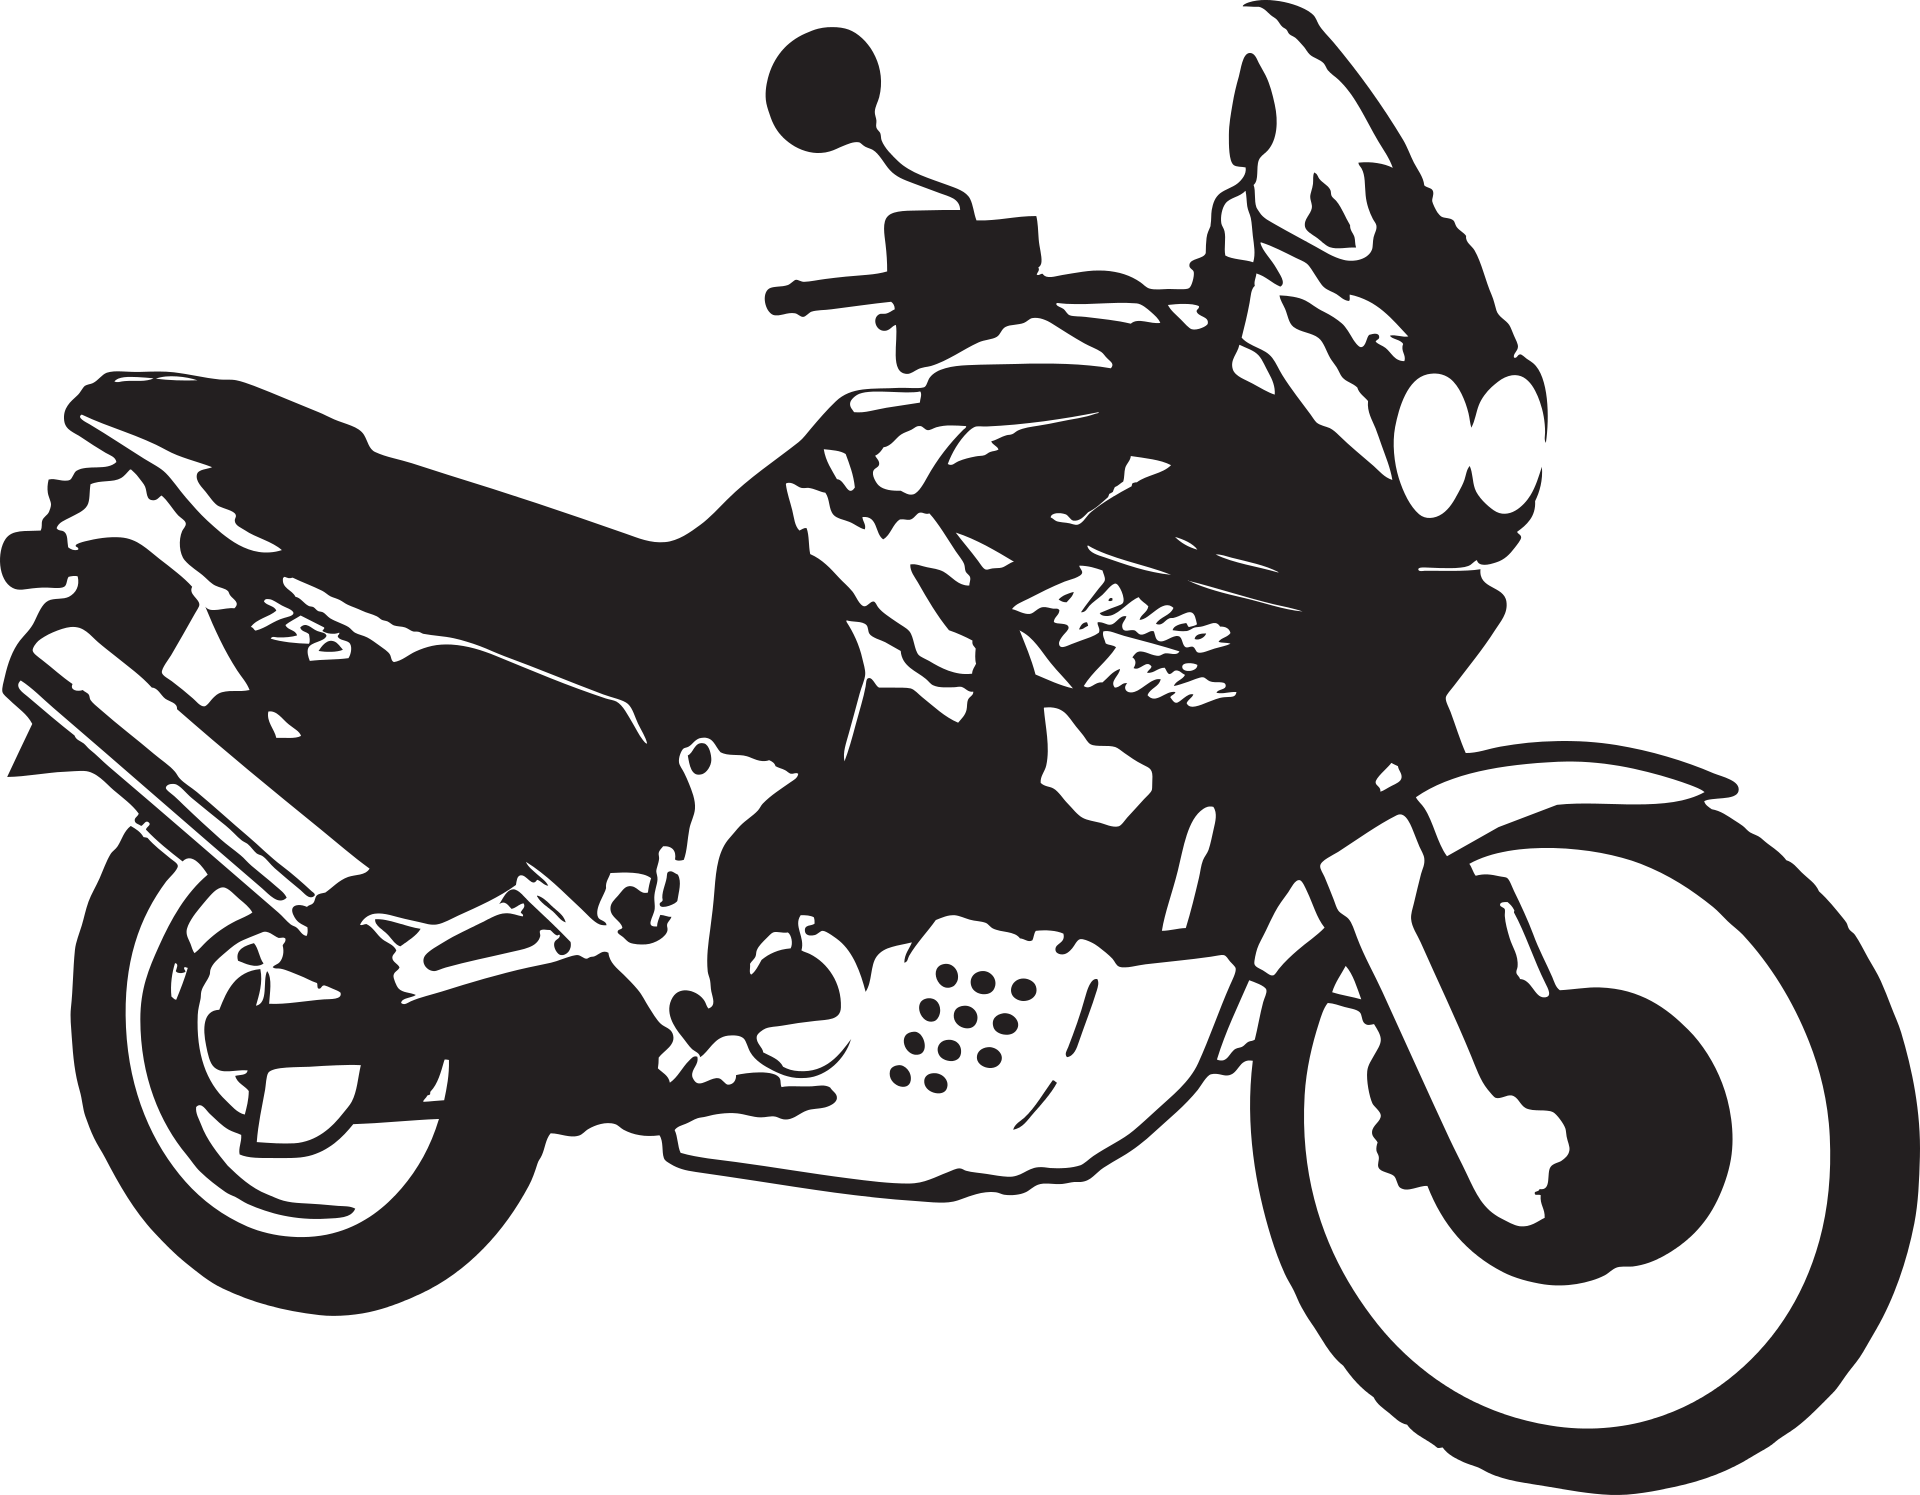 Ktm Wikipedia >> File:Enduro symbol.png - Wikimedia Commons